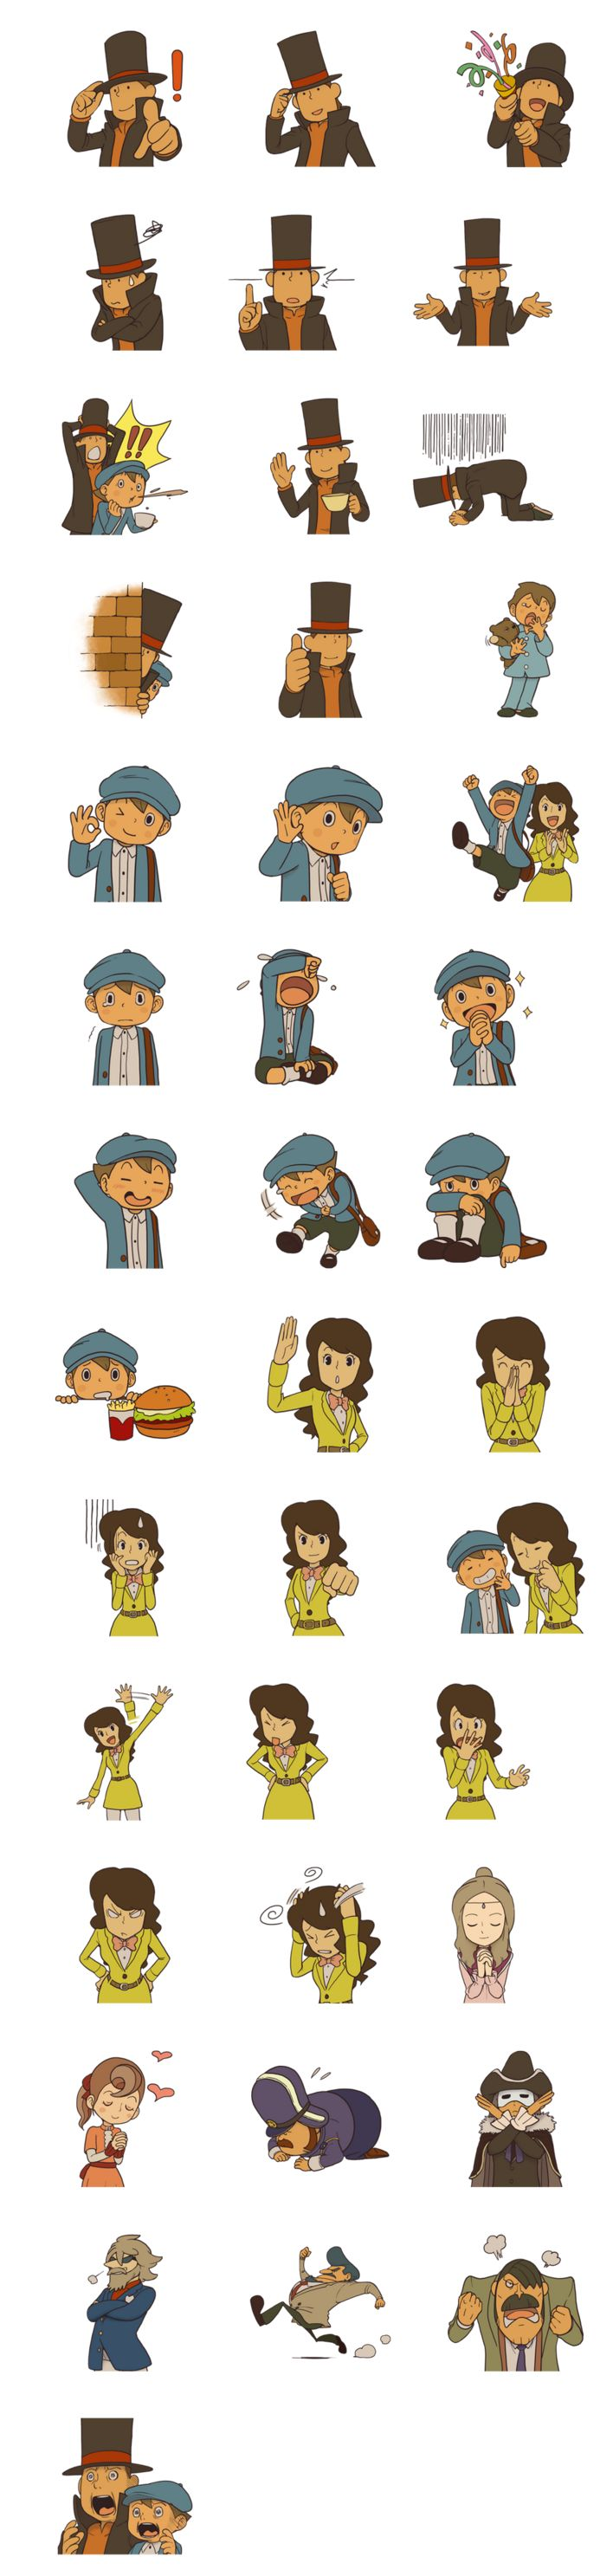 Professor Layton : Sticker Telegram https://telegram.me/addstickers/ProfessorLaytonLINE